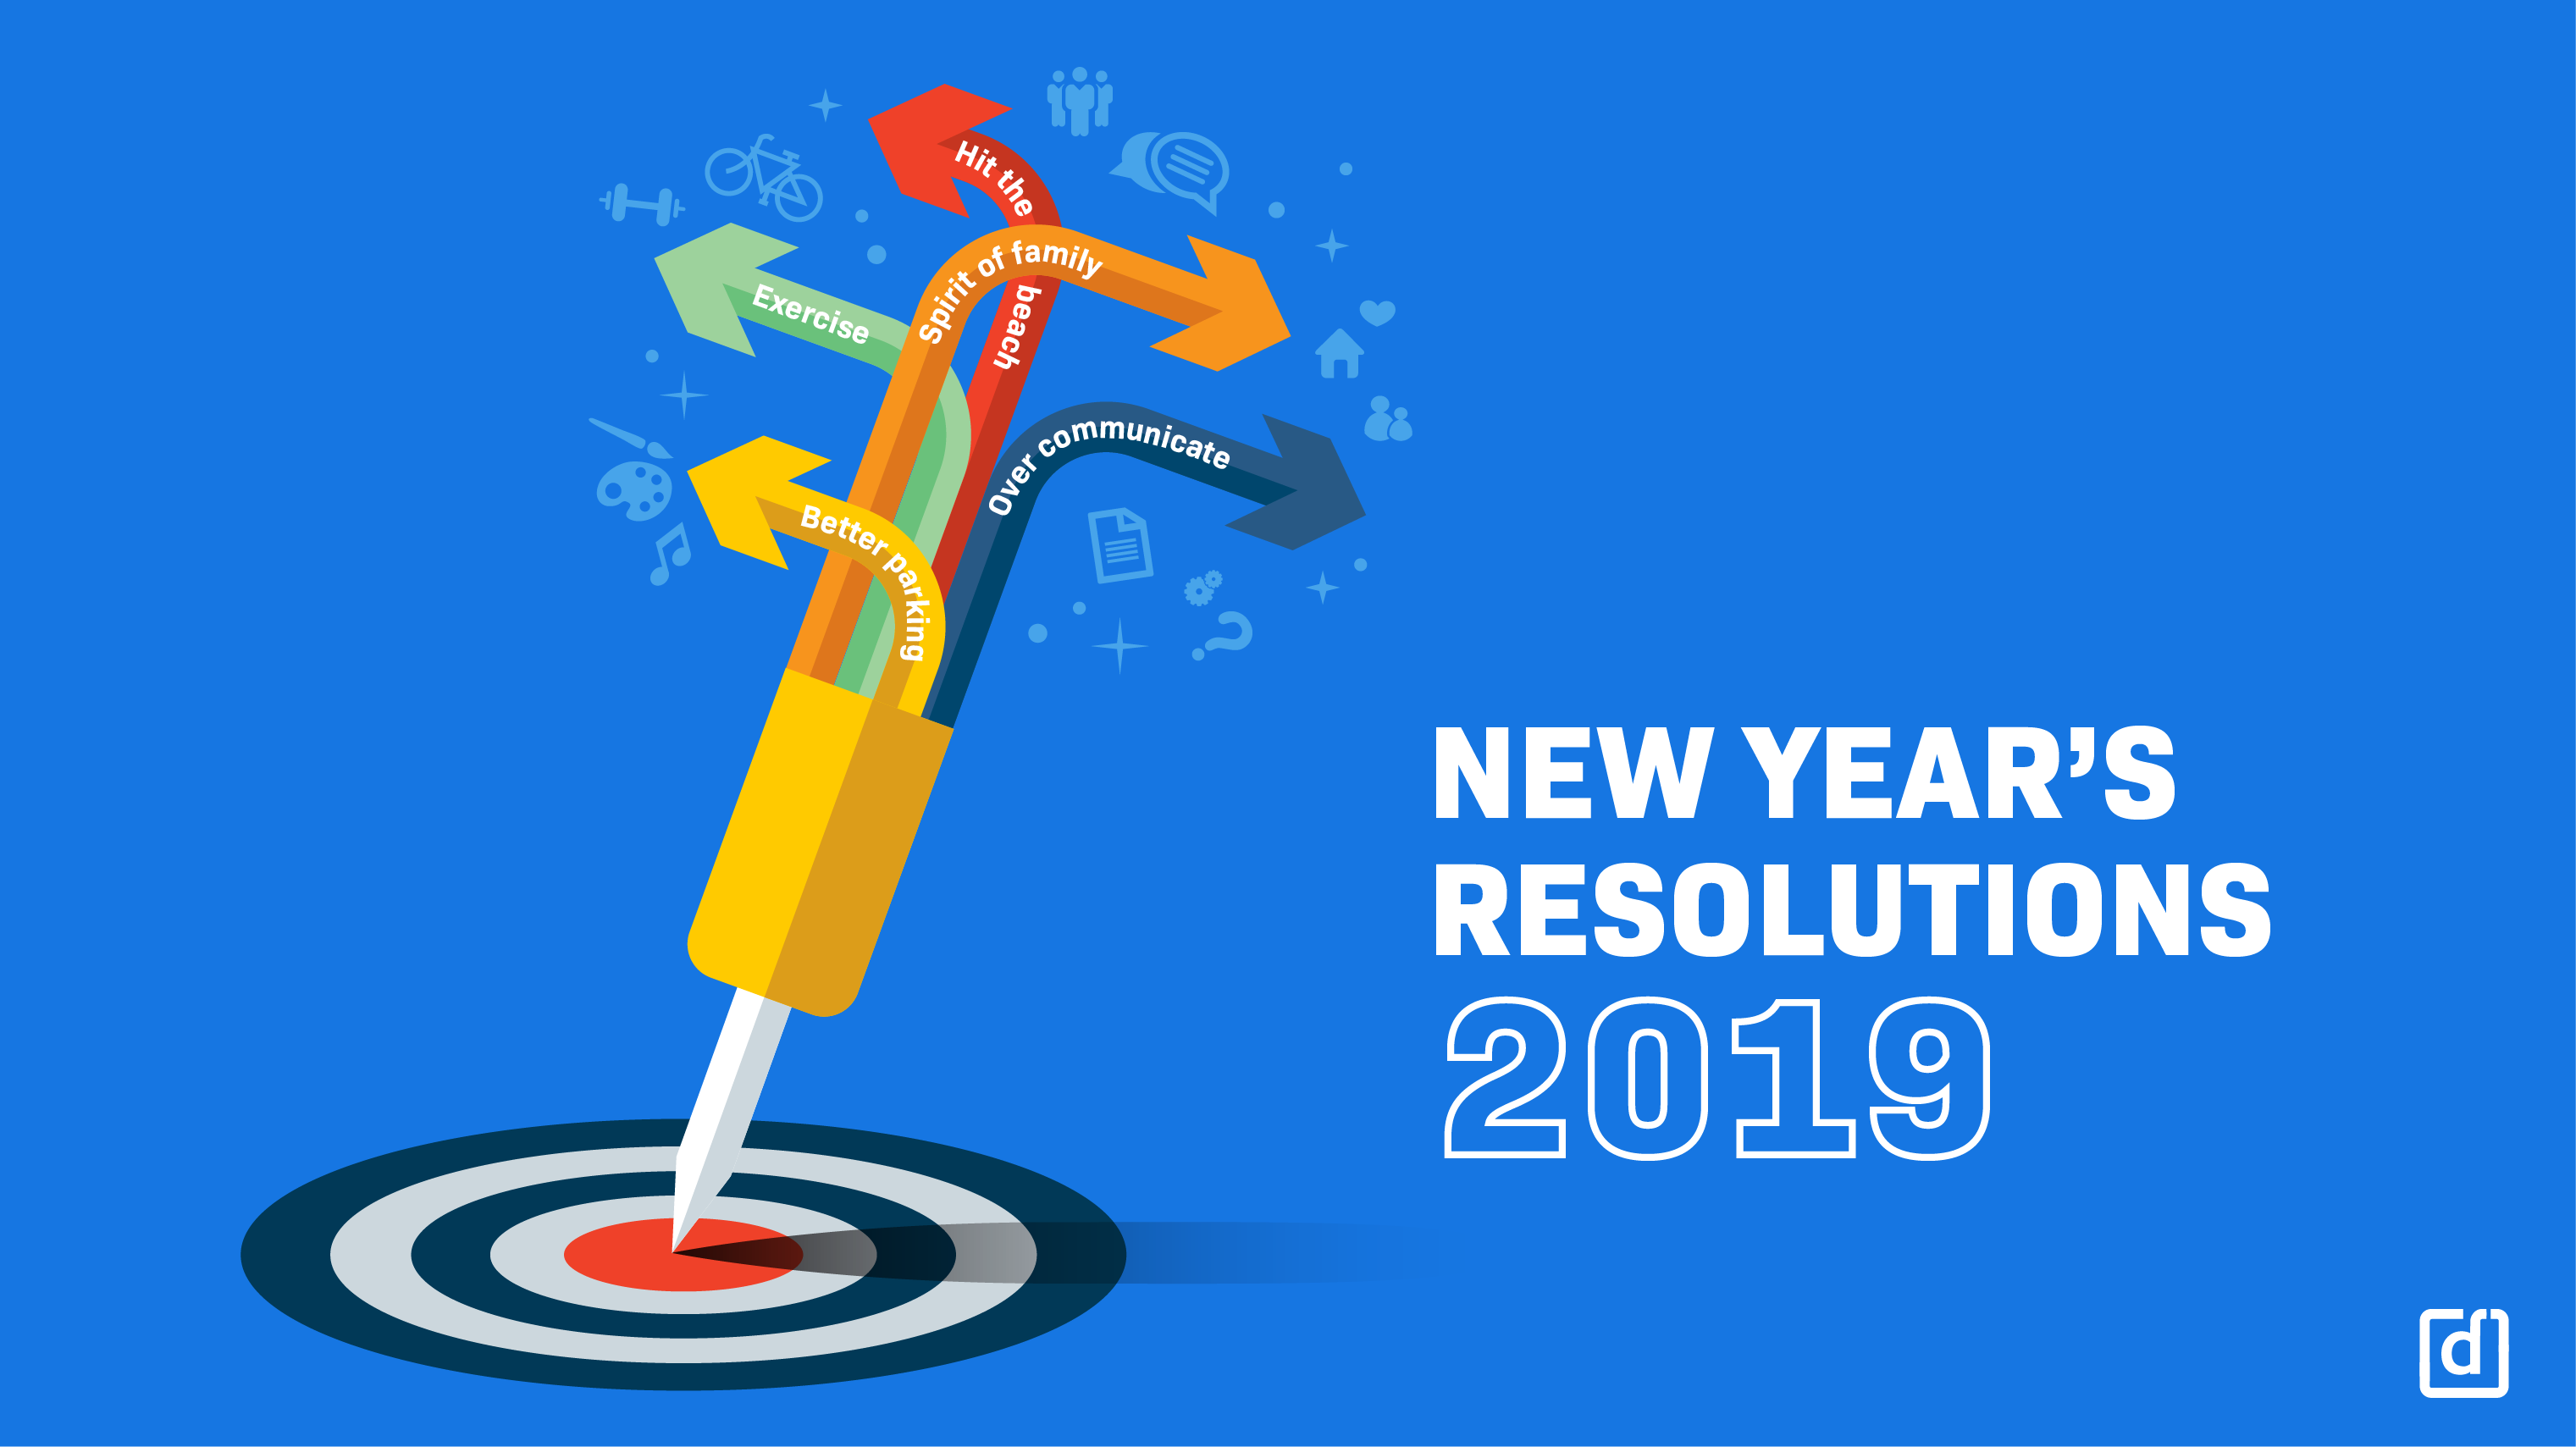 Same, Yet New - Our Resolutions for Another Amazing Year